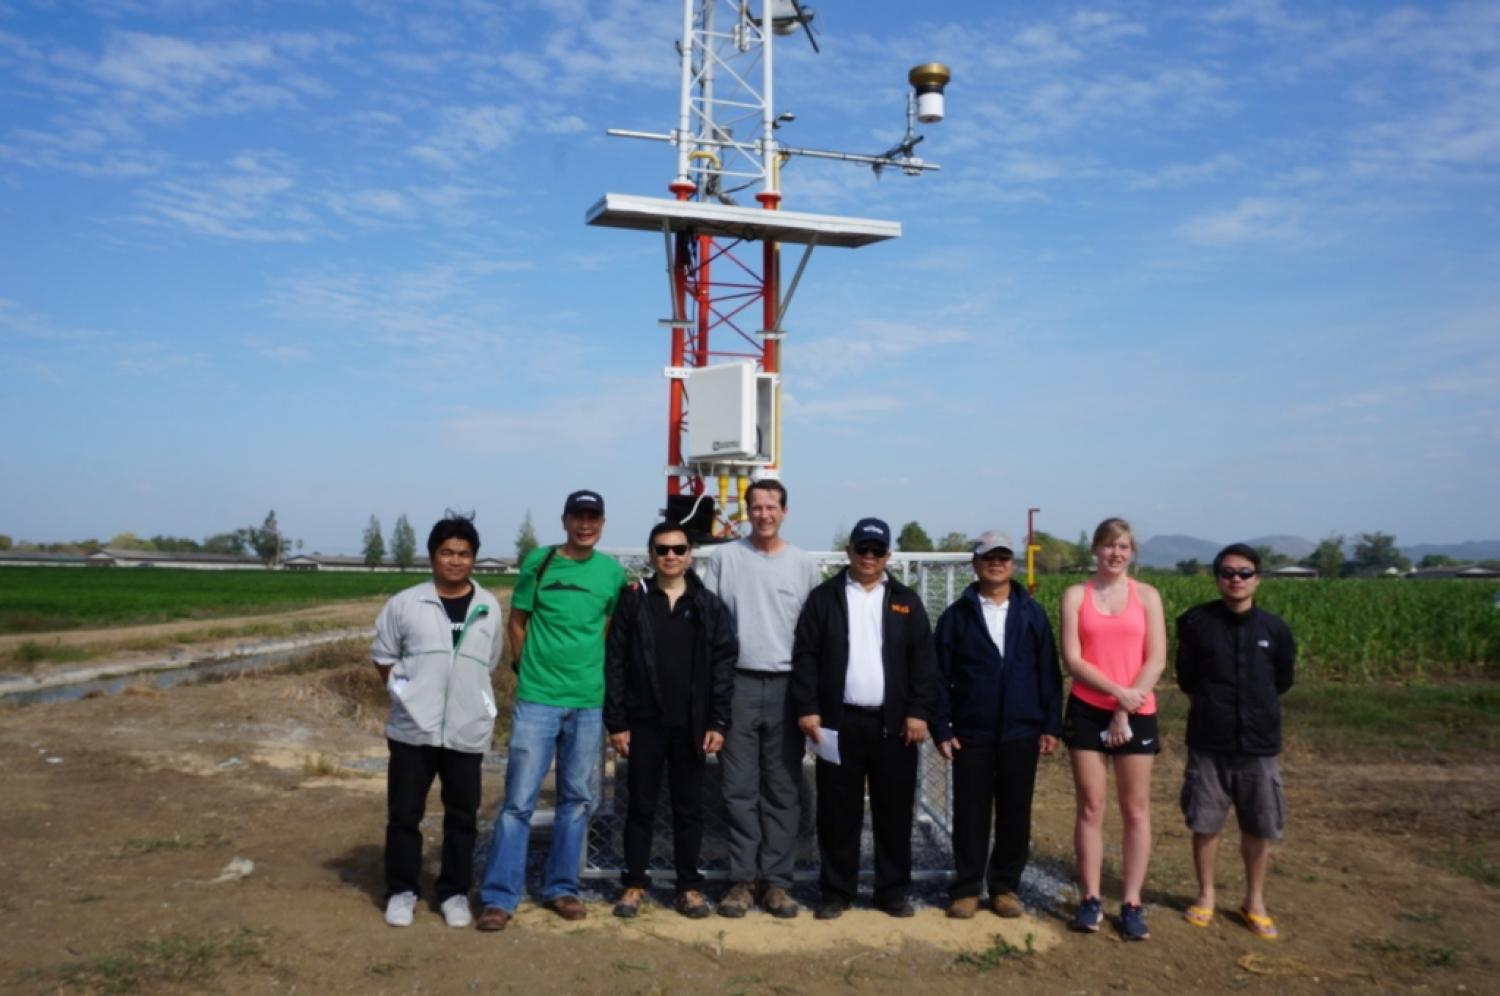 Group of 8 people standing in front of meteorological tower